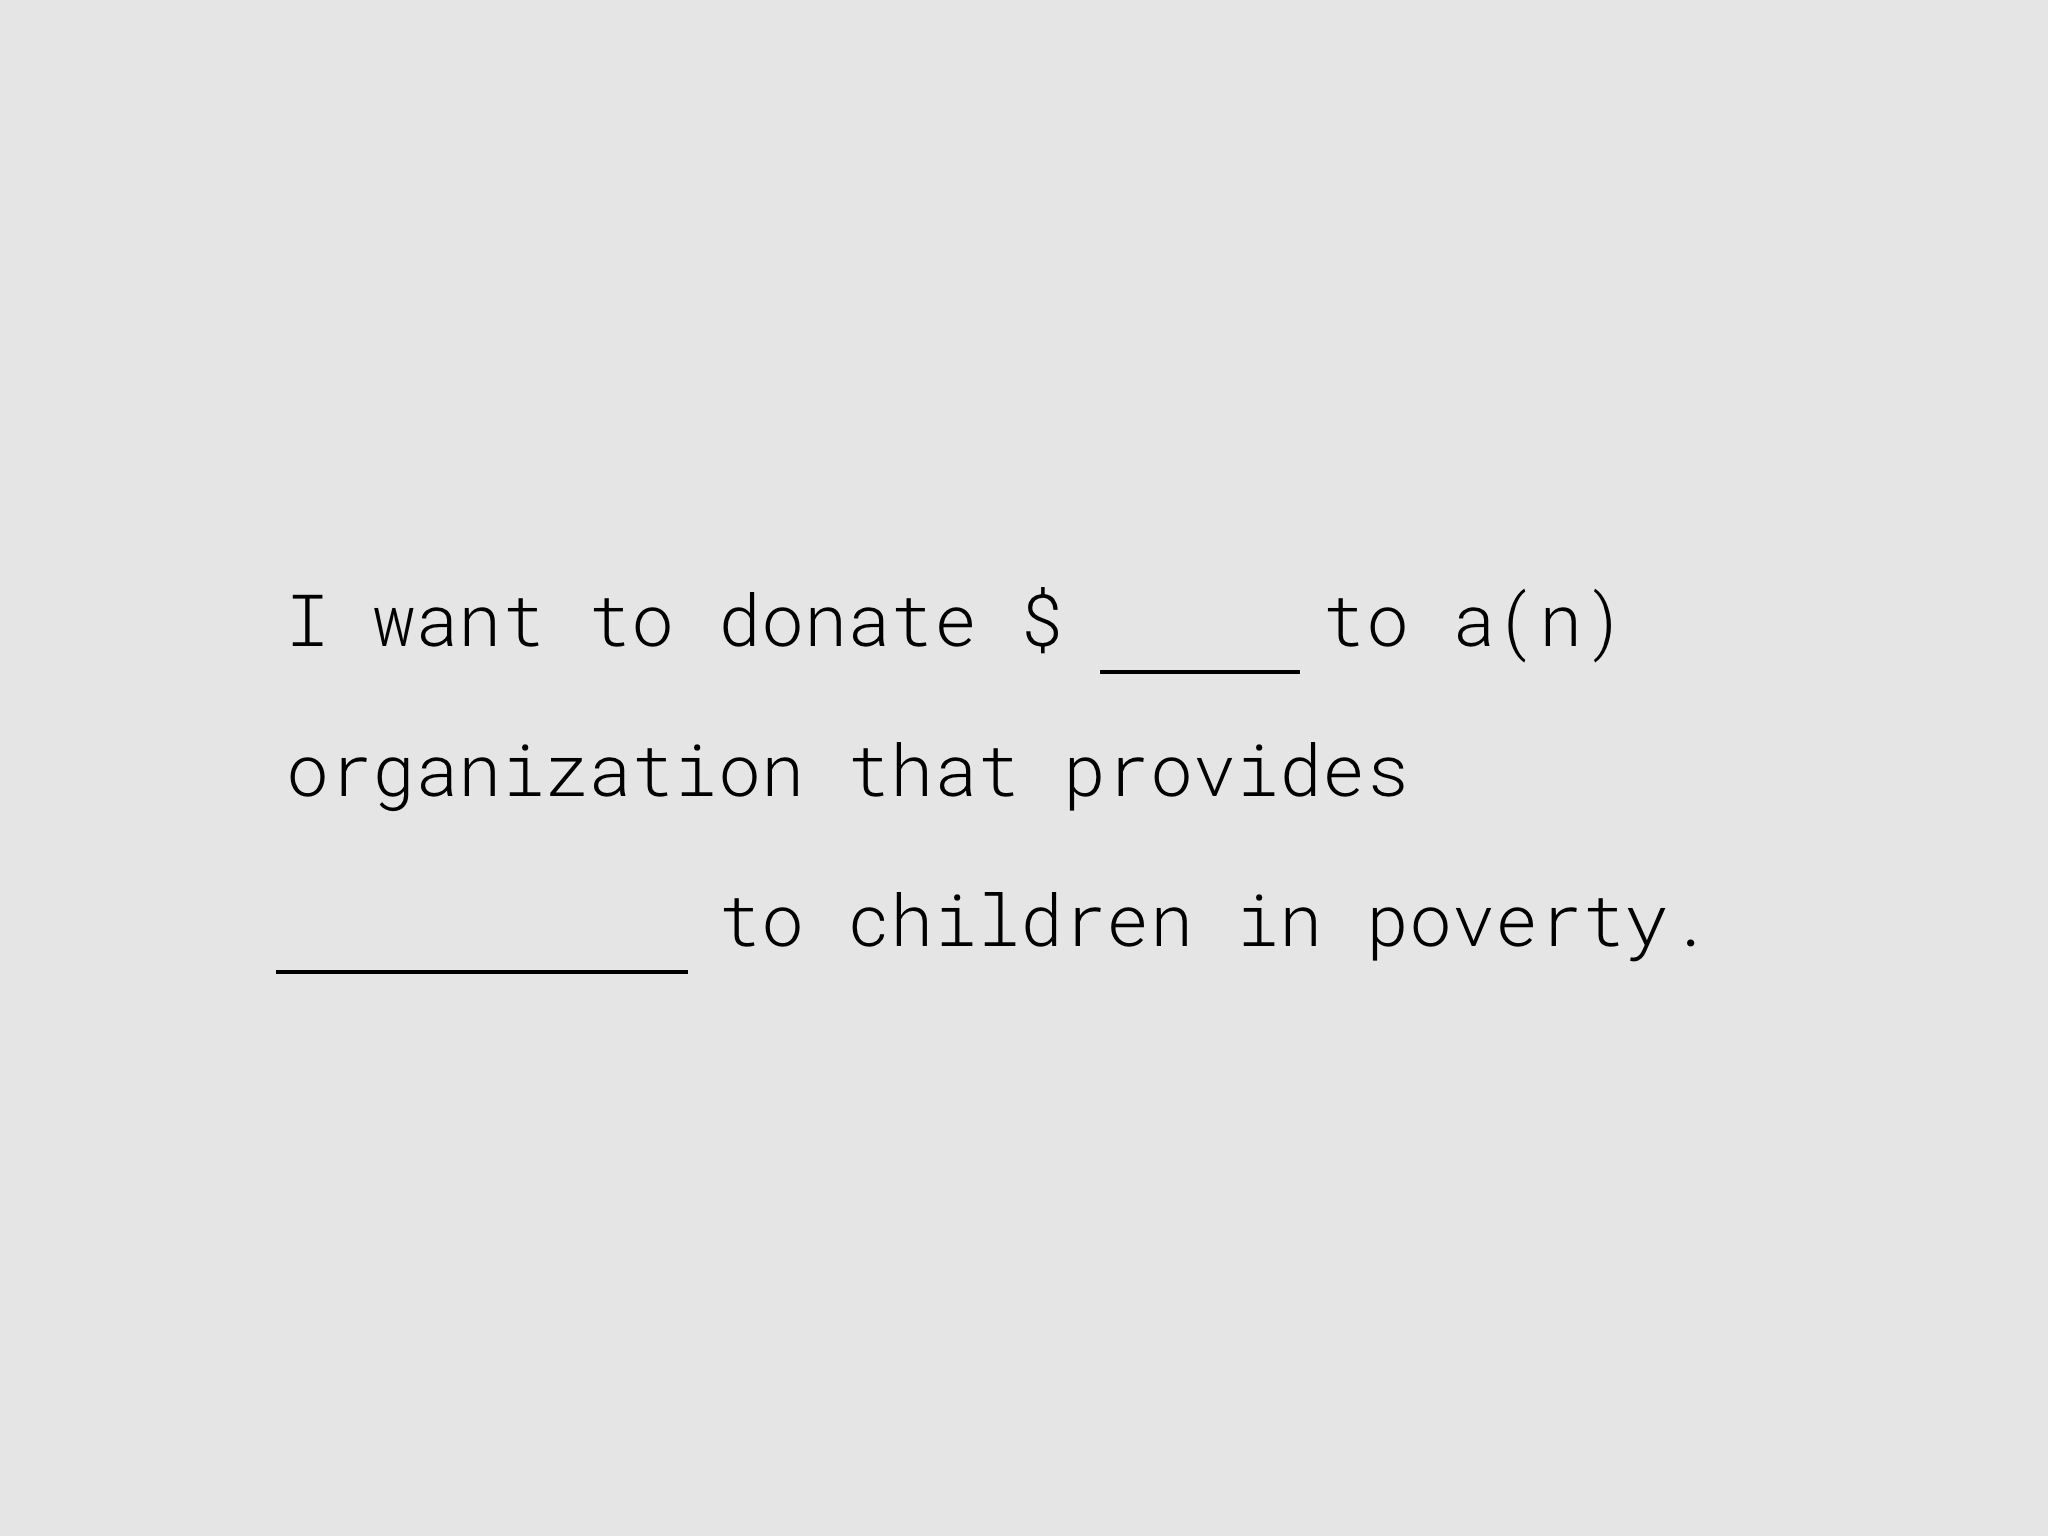 poverty_organization-1.png